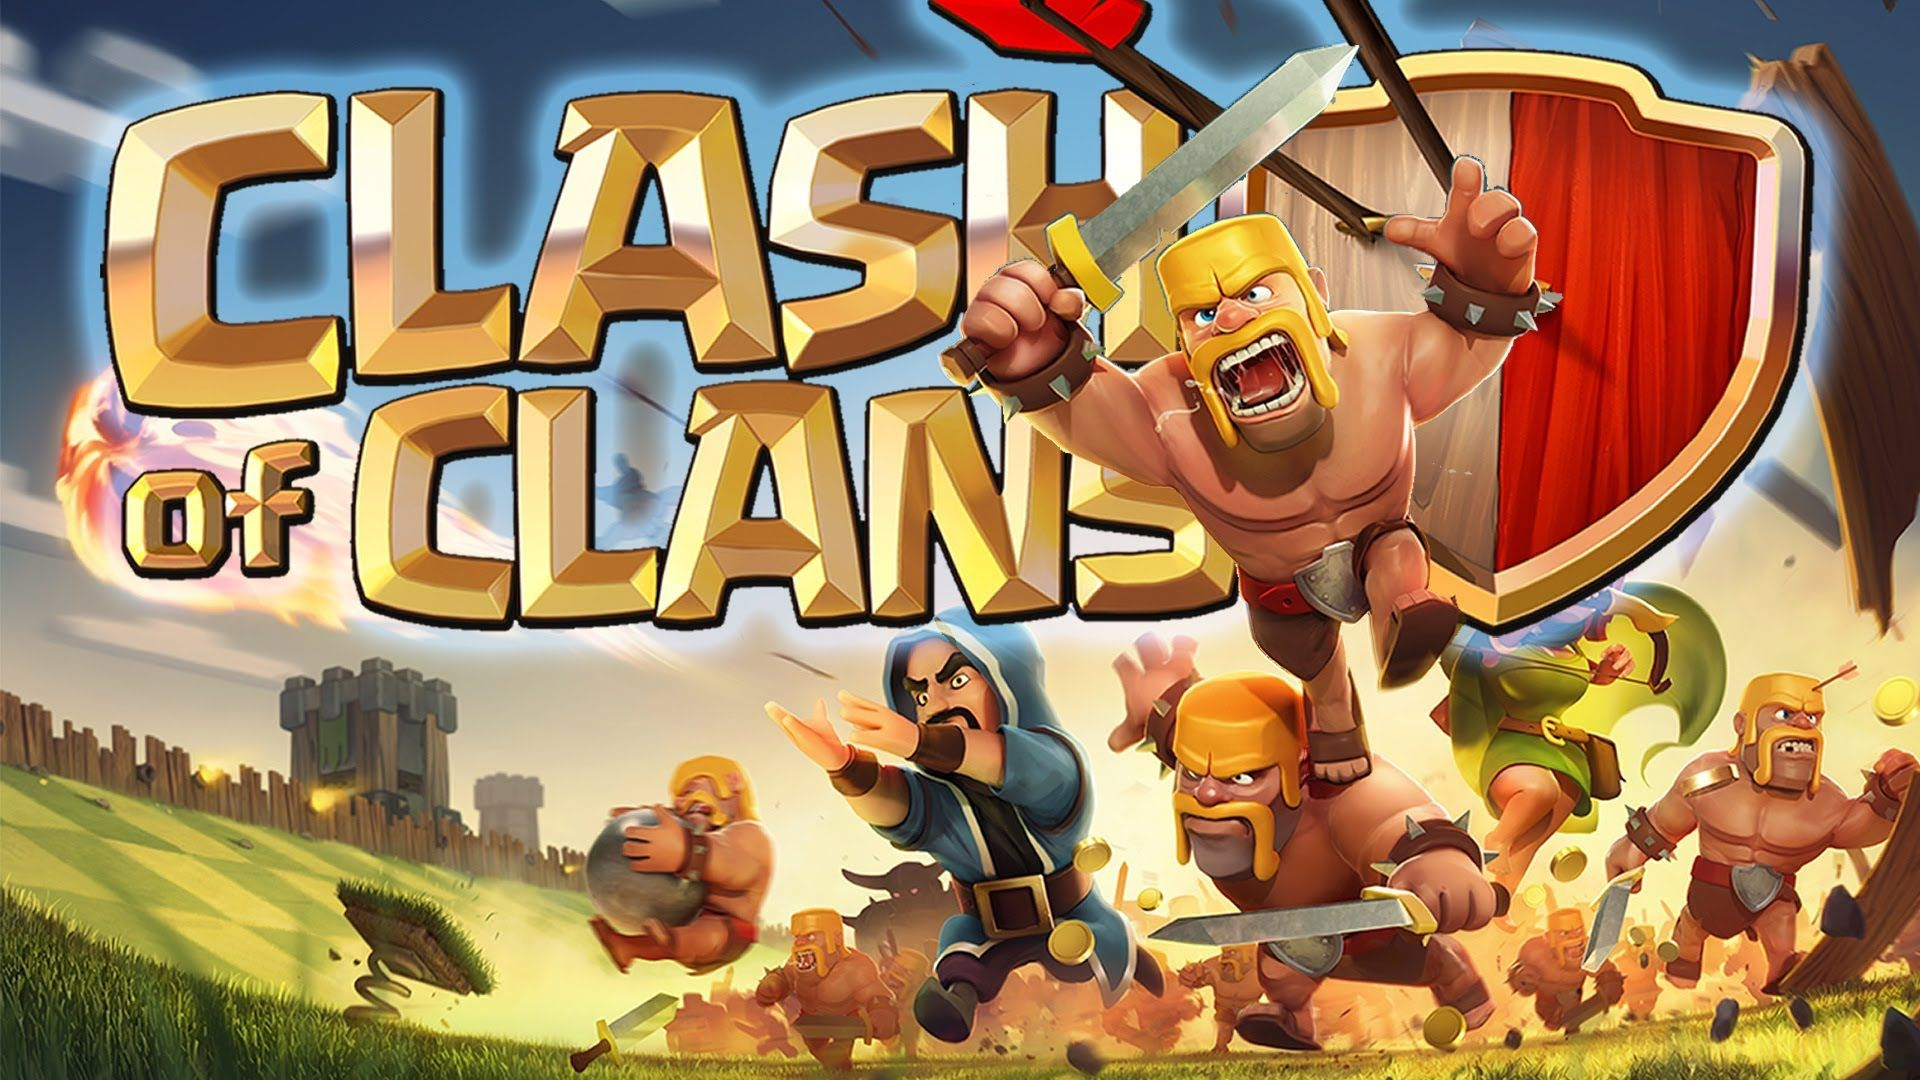 Clash of Clans Wallpapers | Best Wallpapers | Android | Pinterest ...